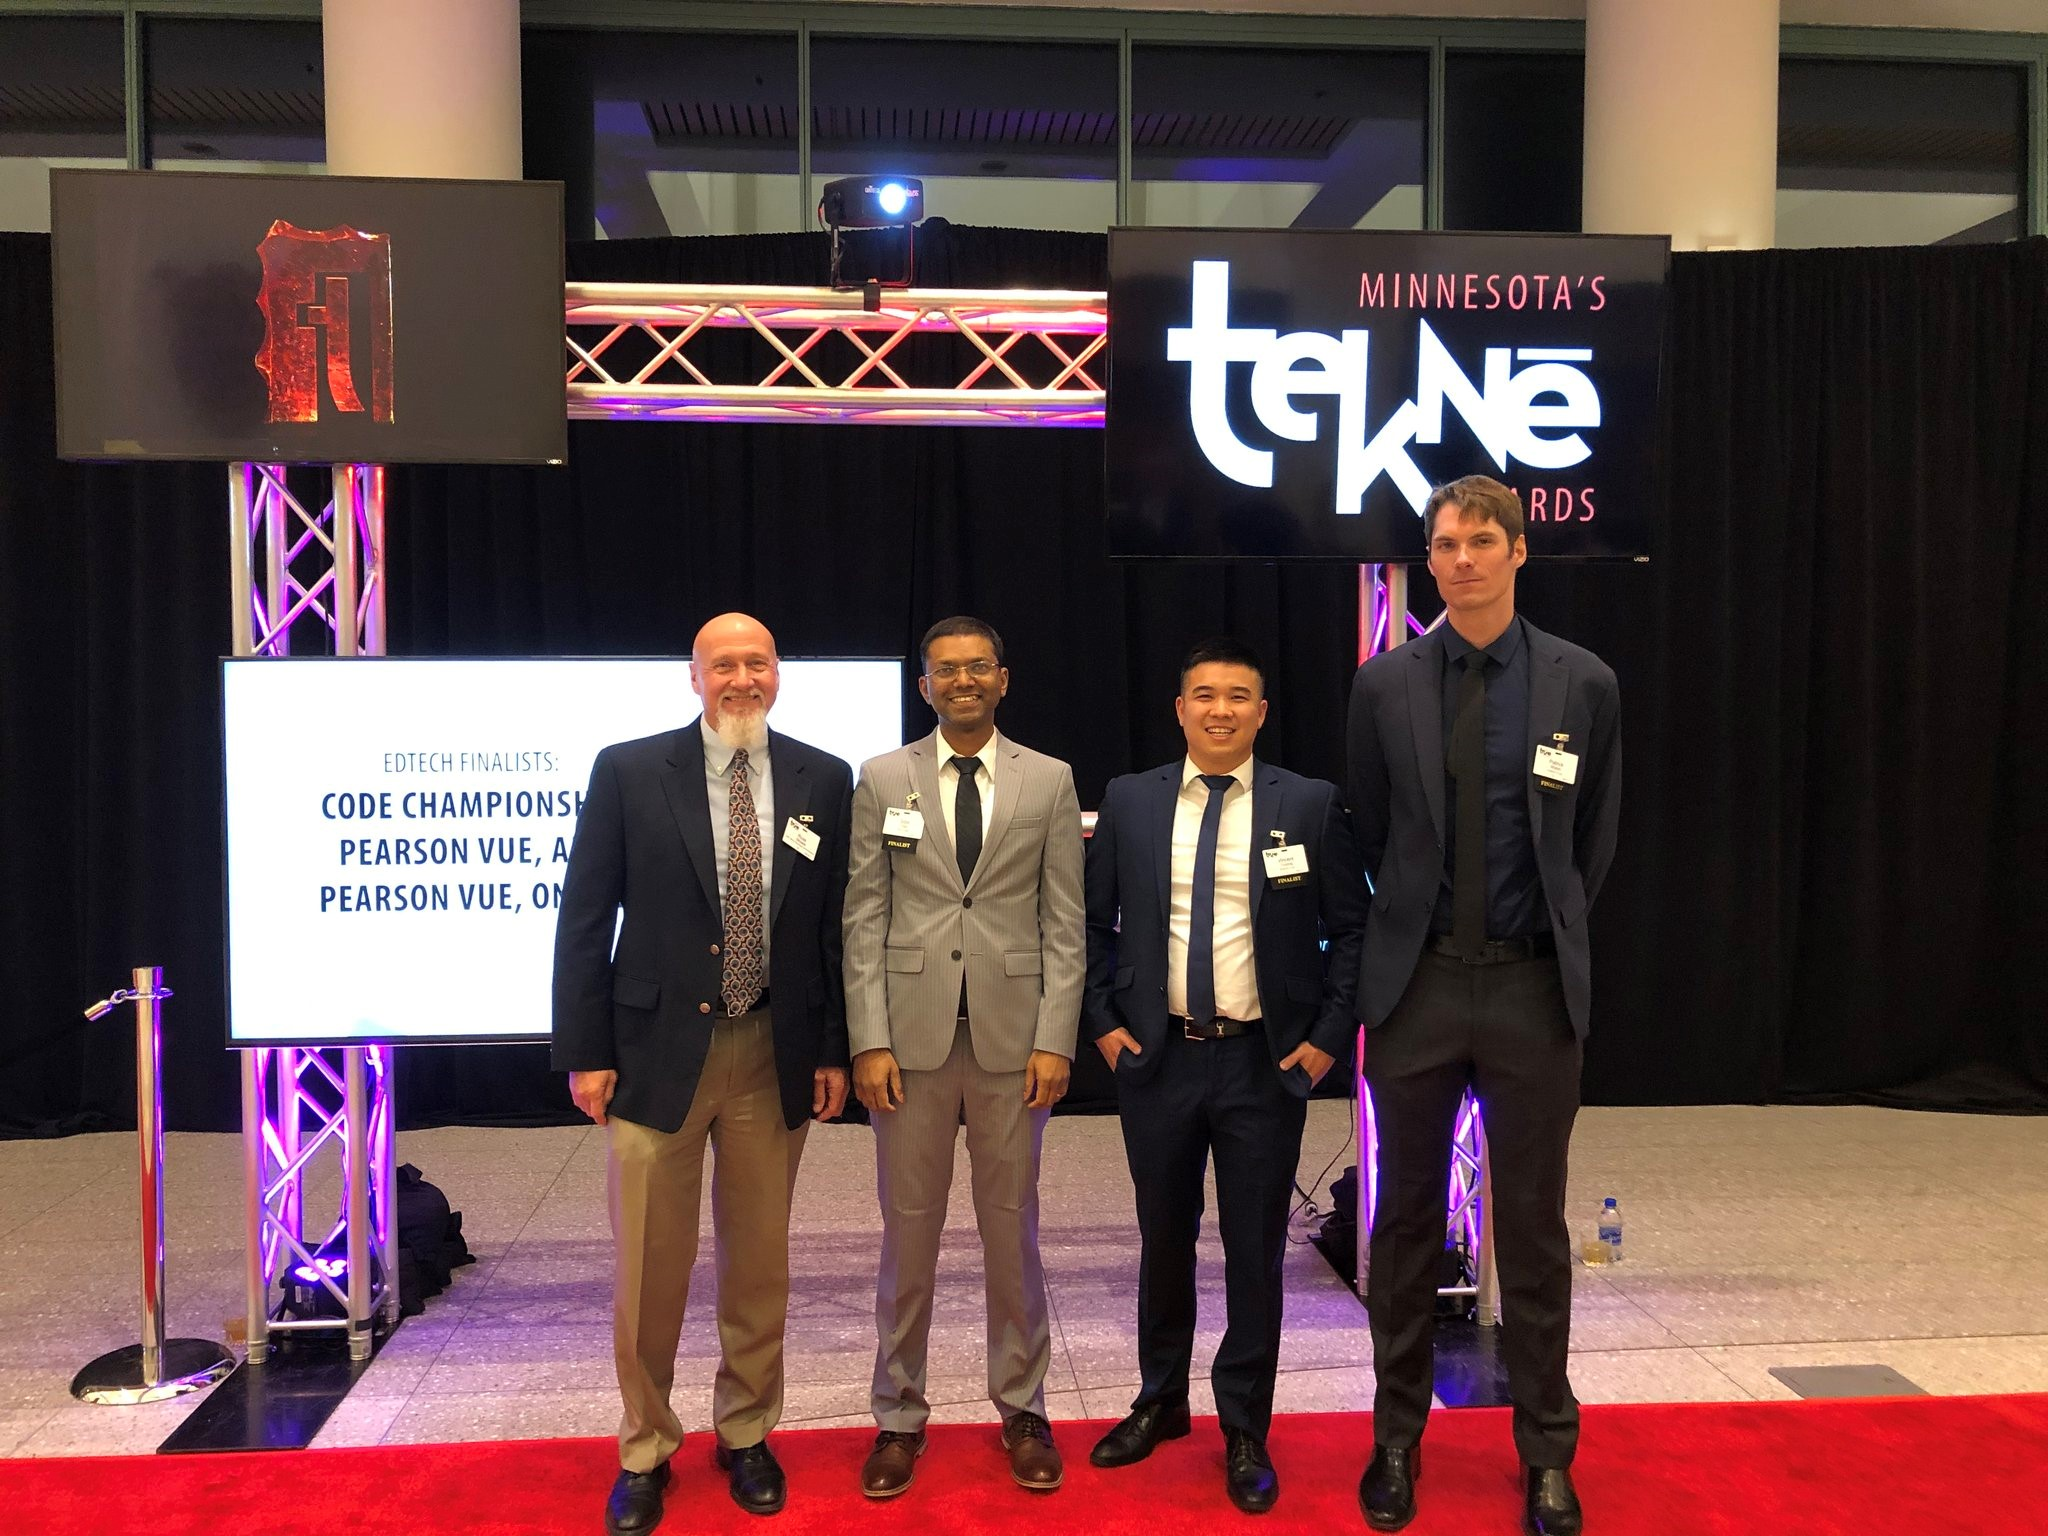 Four men in suits standing in front of a Tekne Awards red carpet picture spot